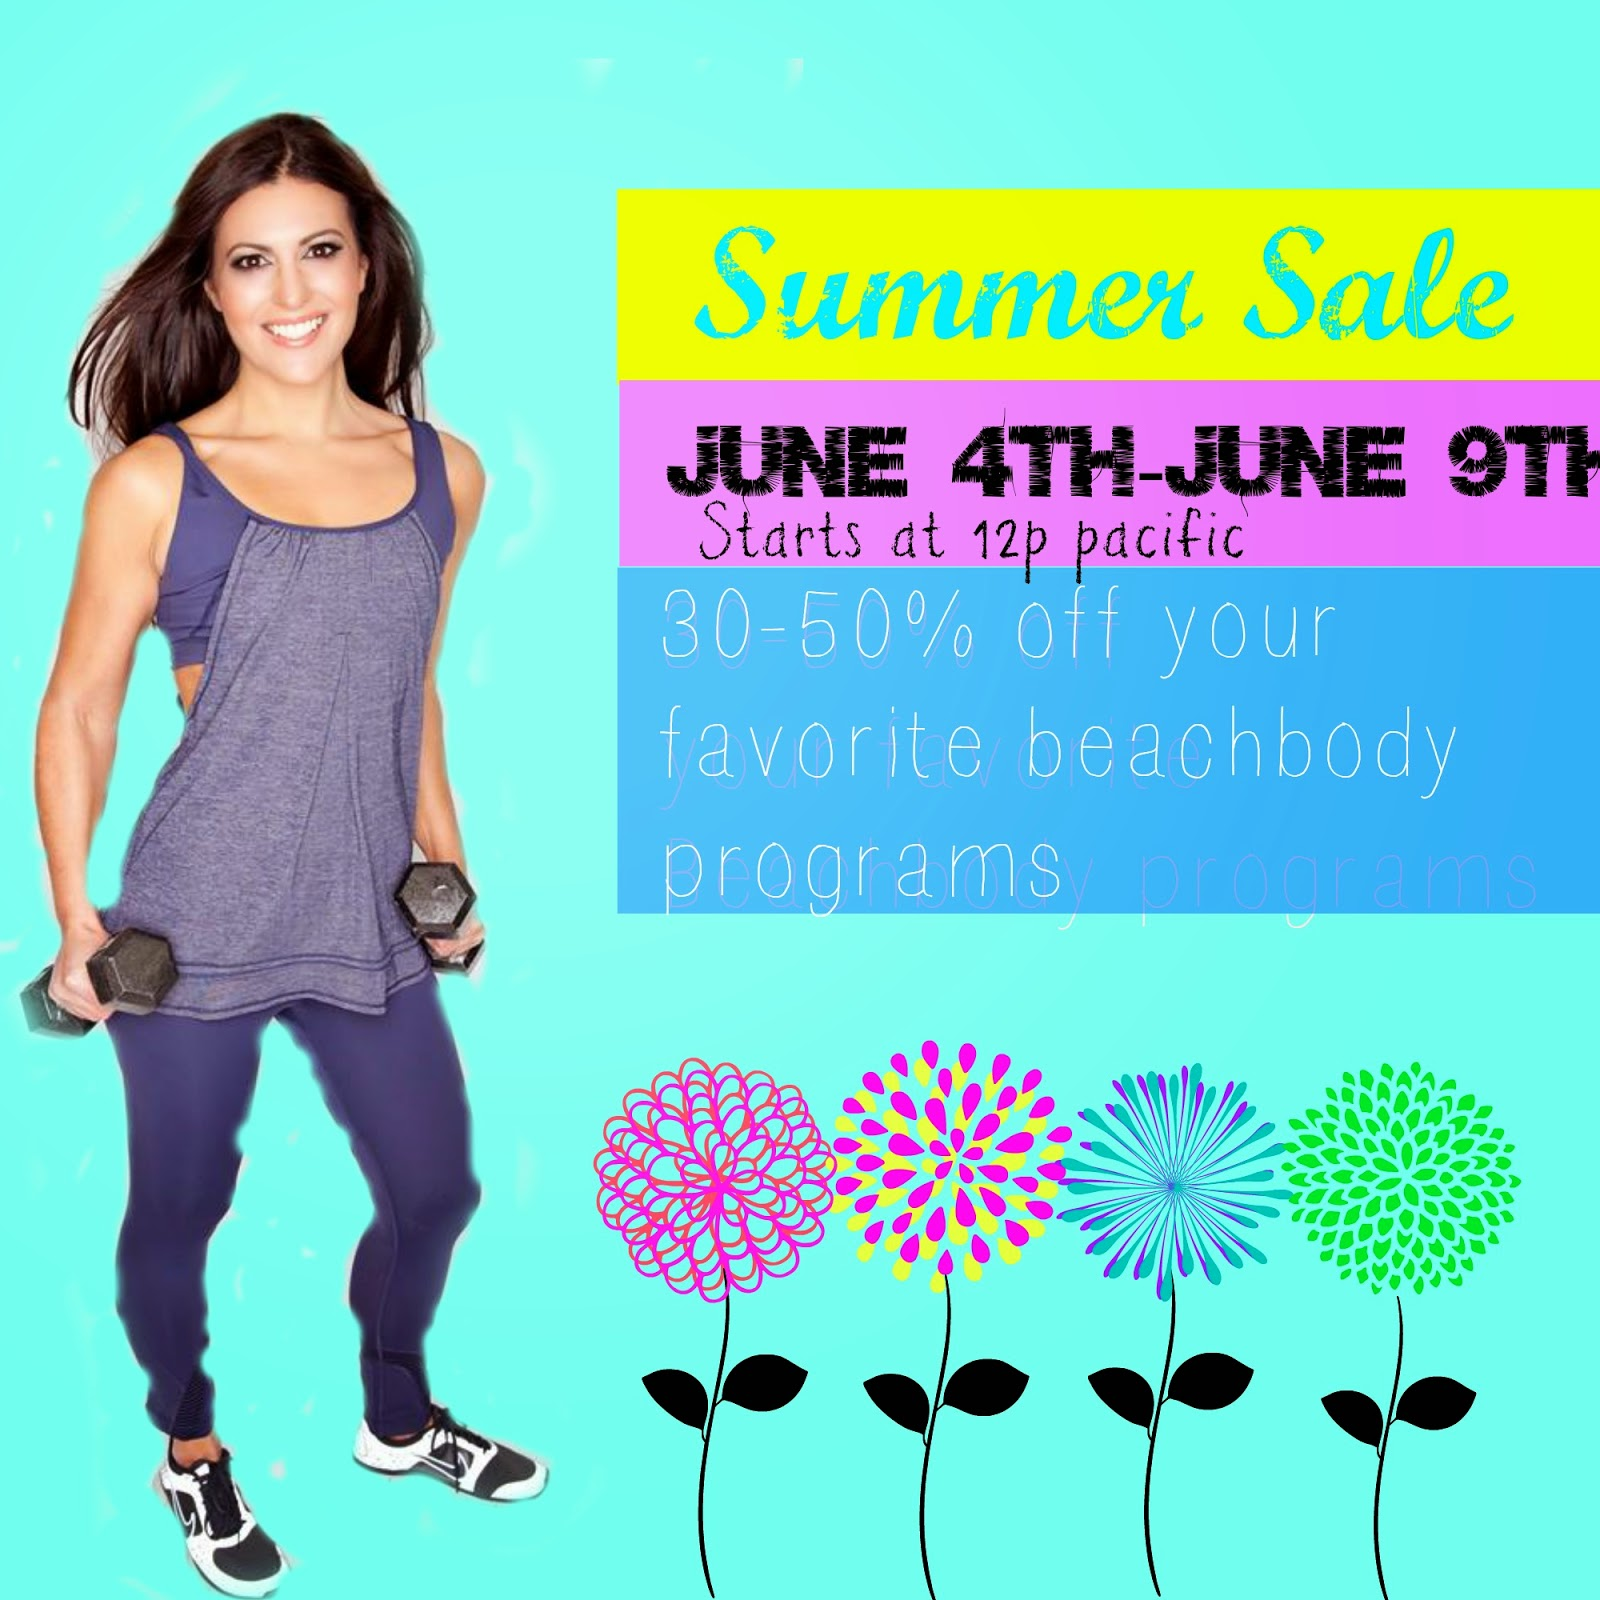 Beachbody summer sale